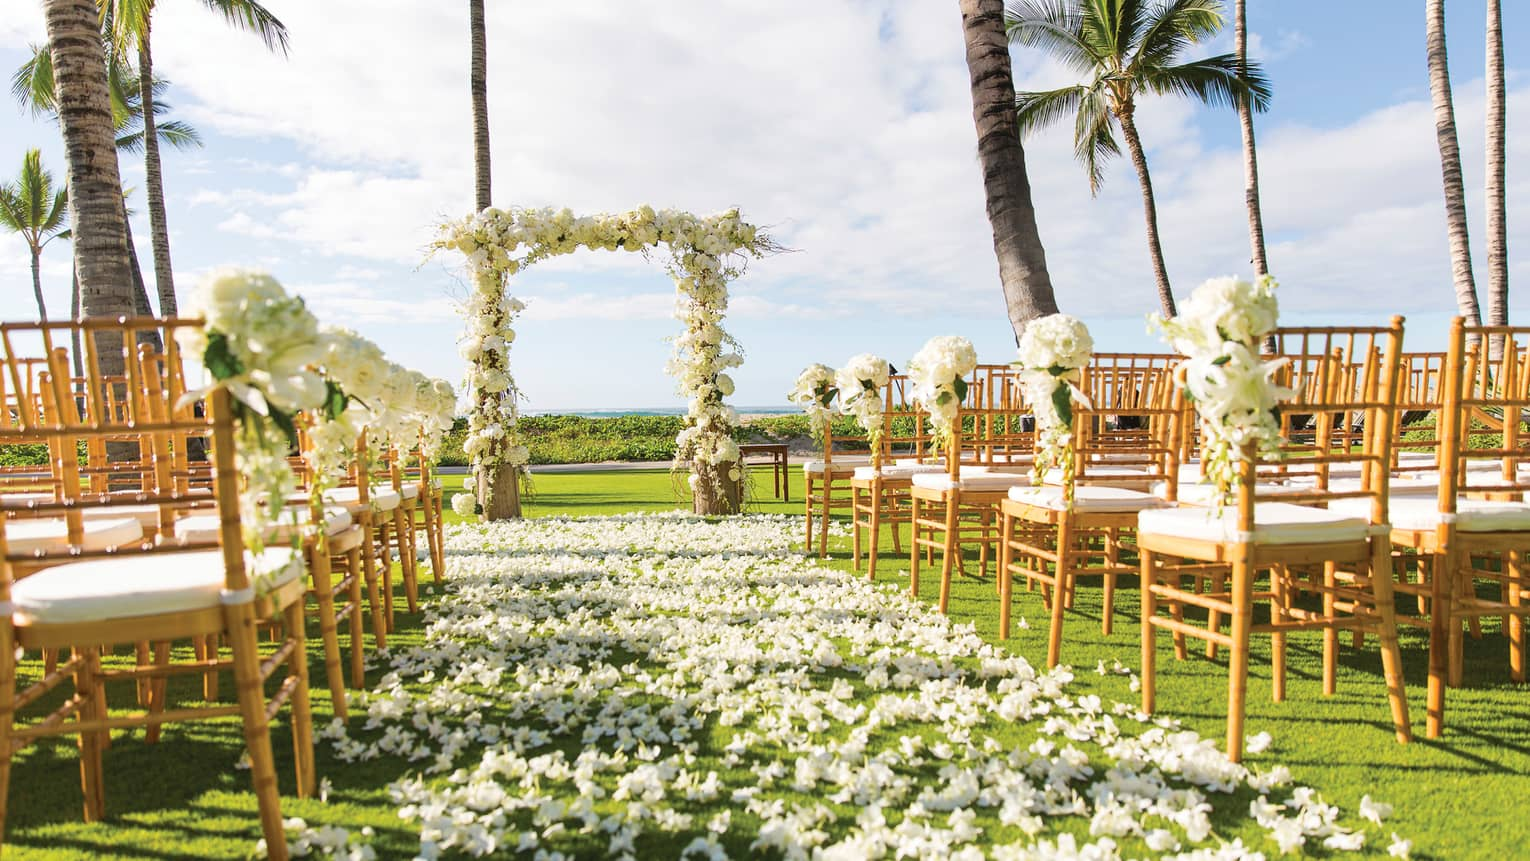 Outdoor wedding ceremony set up, white flowers along aisle between rows of chairs, altar